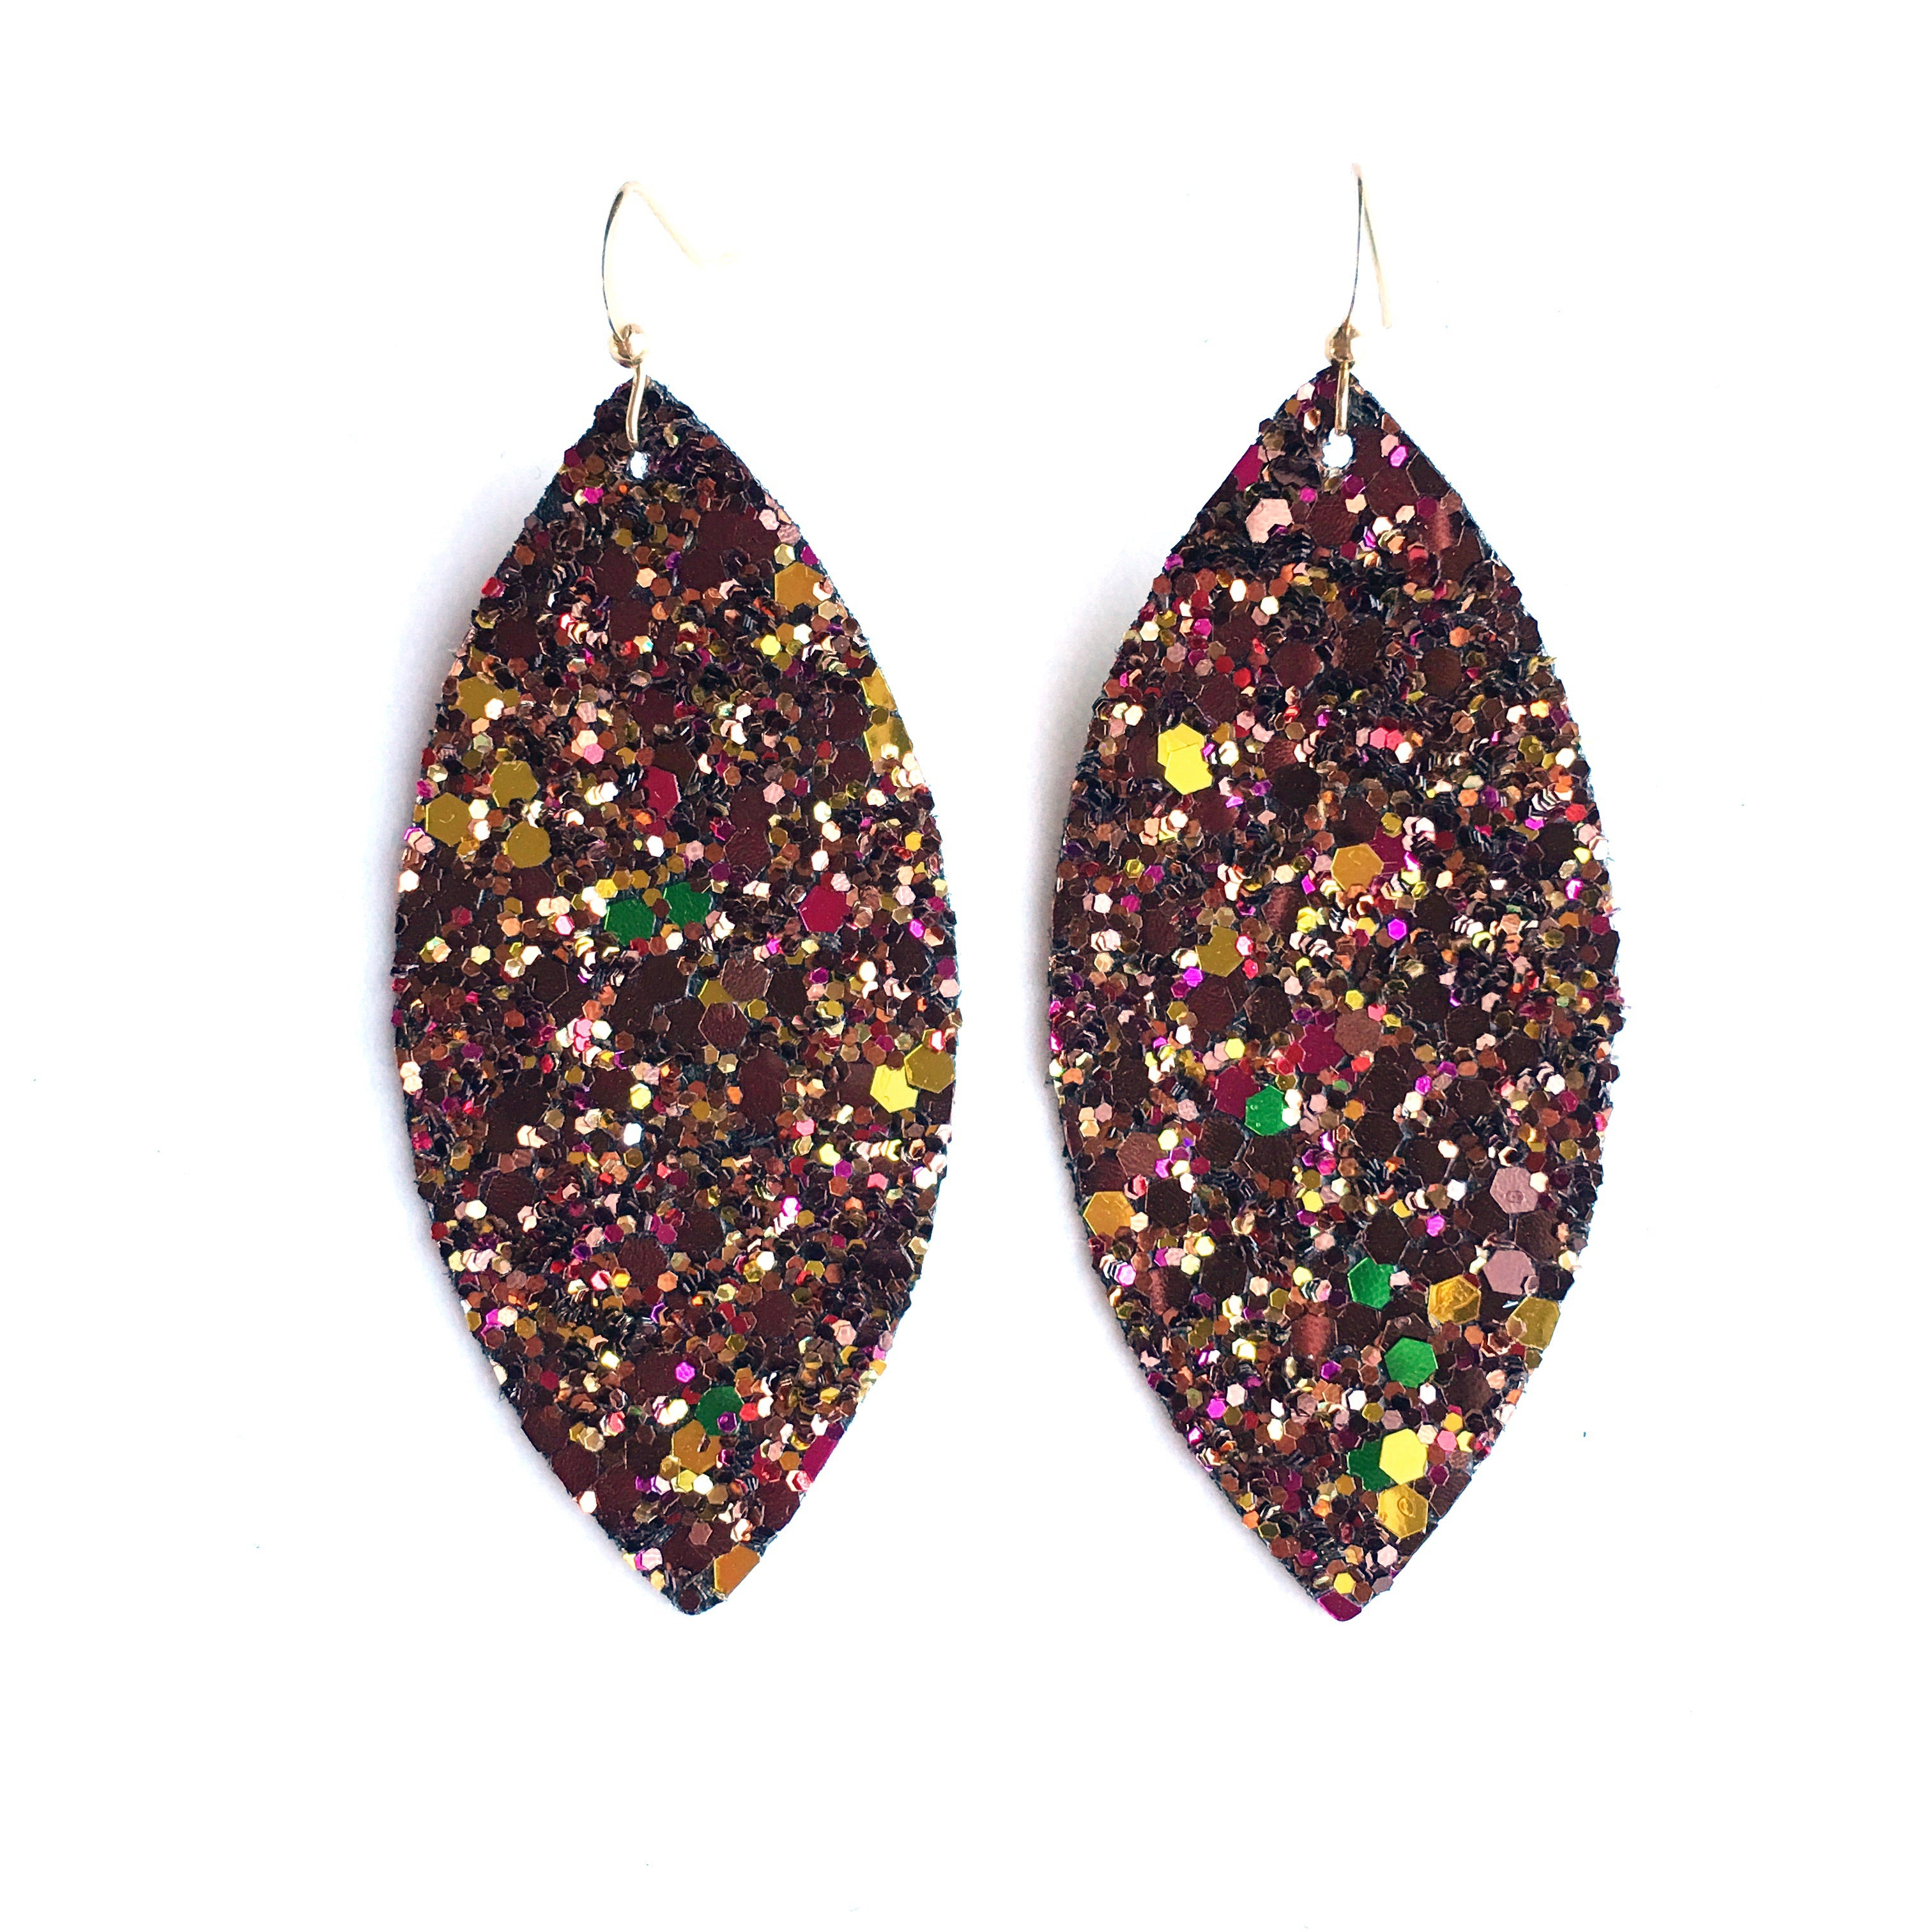 Chocolate Covered Cherry Glitter Earrings